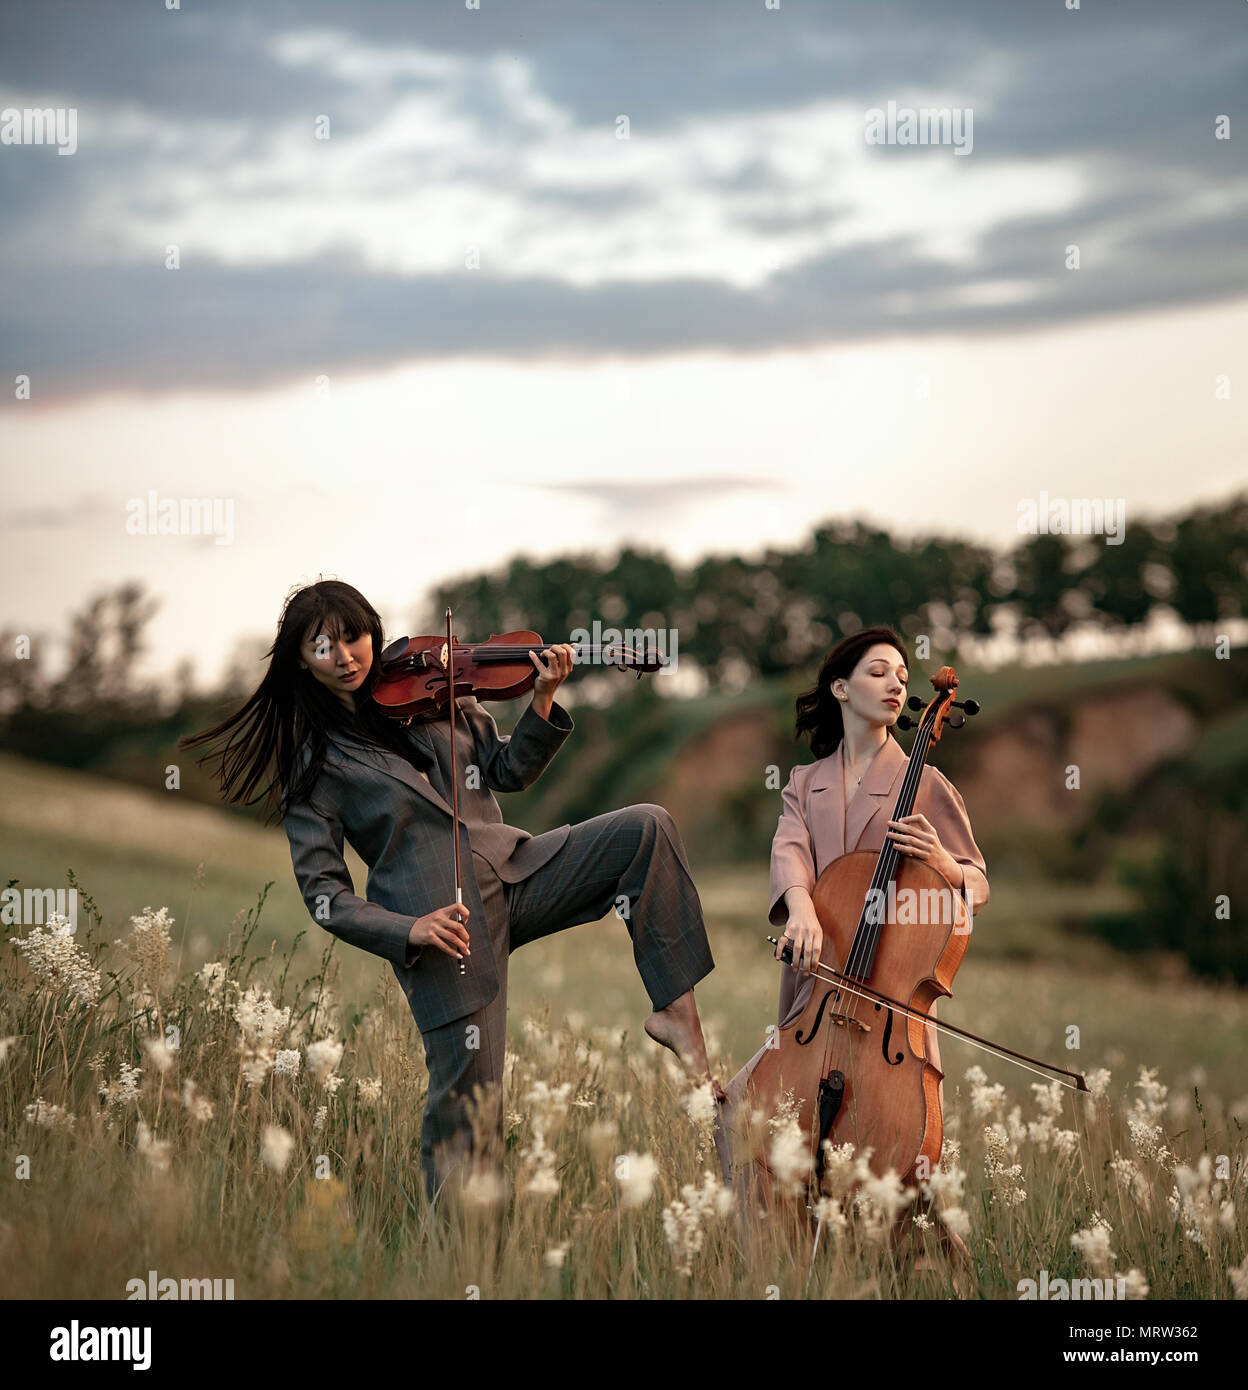 Female musical duet with violin and cello plays on flowering meadow against backdrop of picturesque landscape. - Stock Image